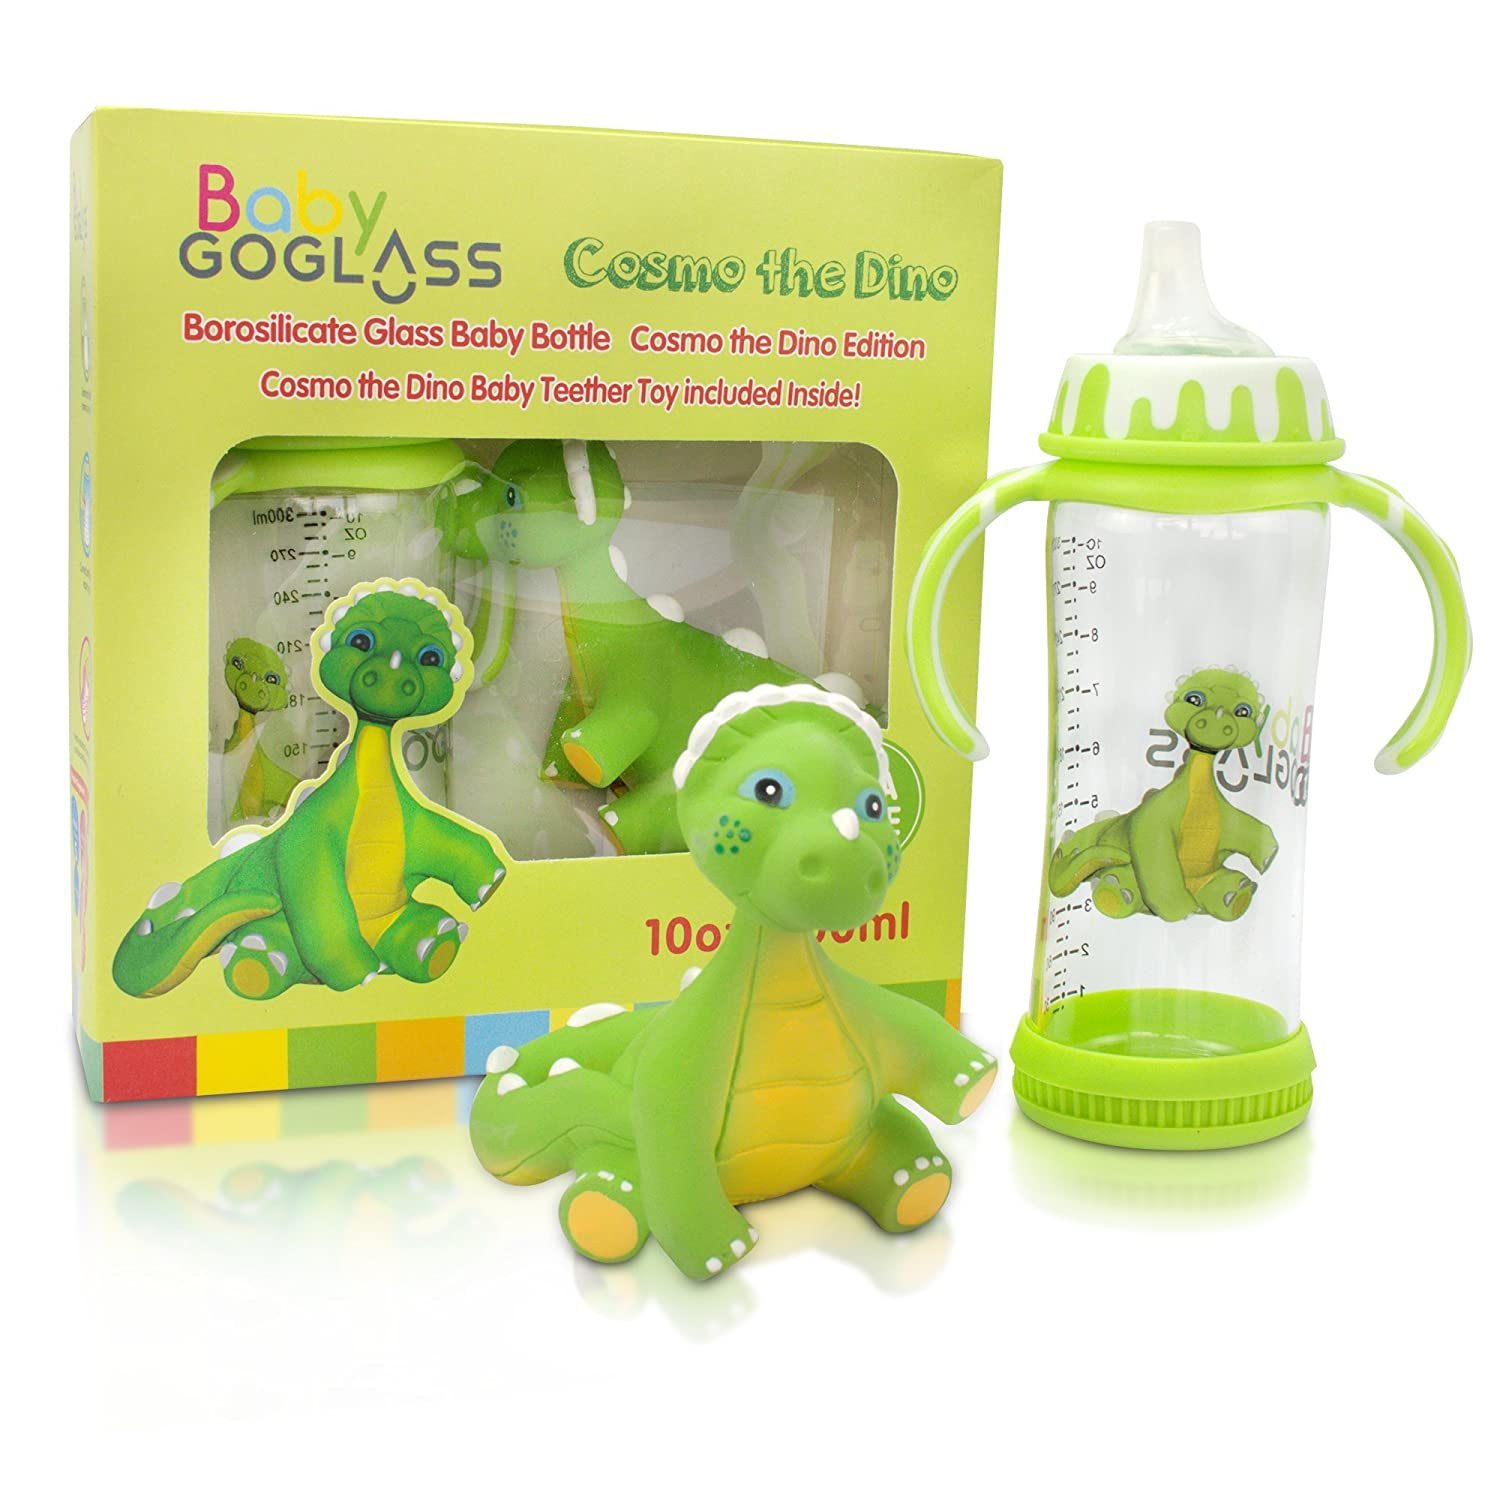 Amazon.com   Insane Sale! GoGlass 10oz Borosilicate Glass Baby Bottle with  Cosmo the Dino Baby Teether   Baby 9ff19f31009a